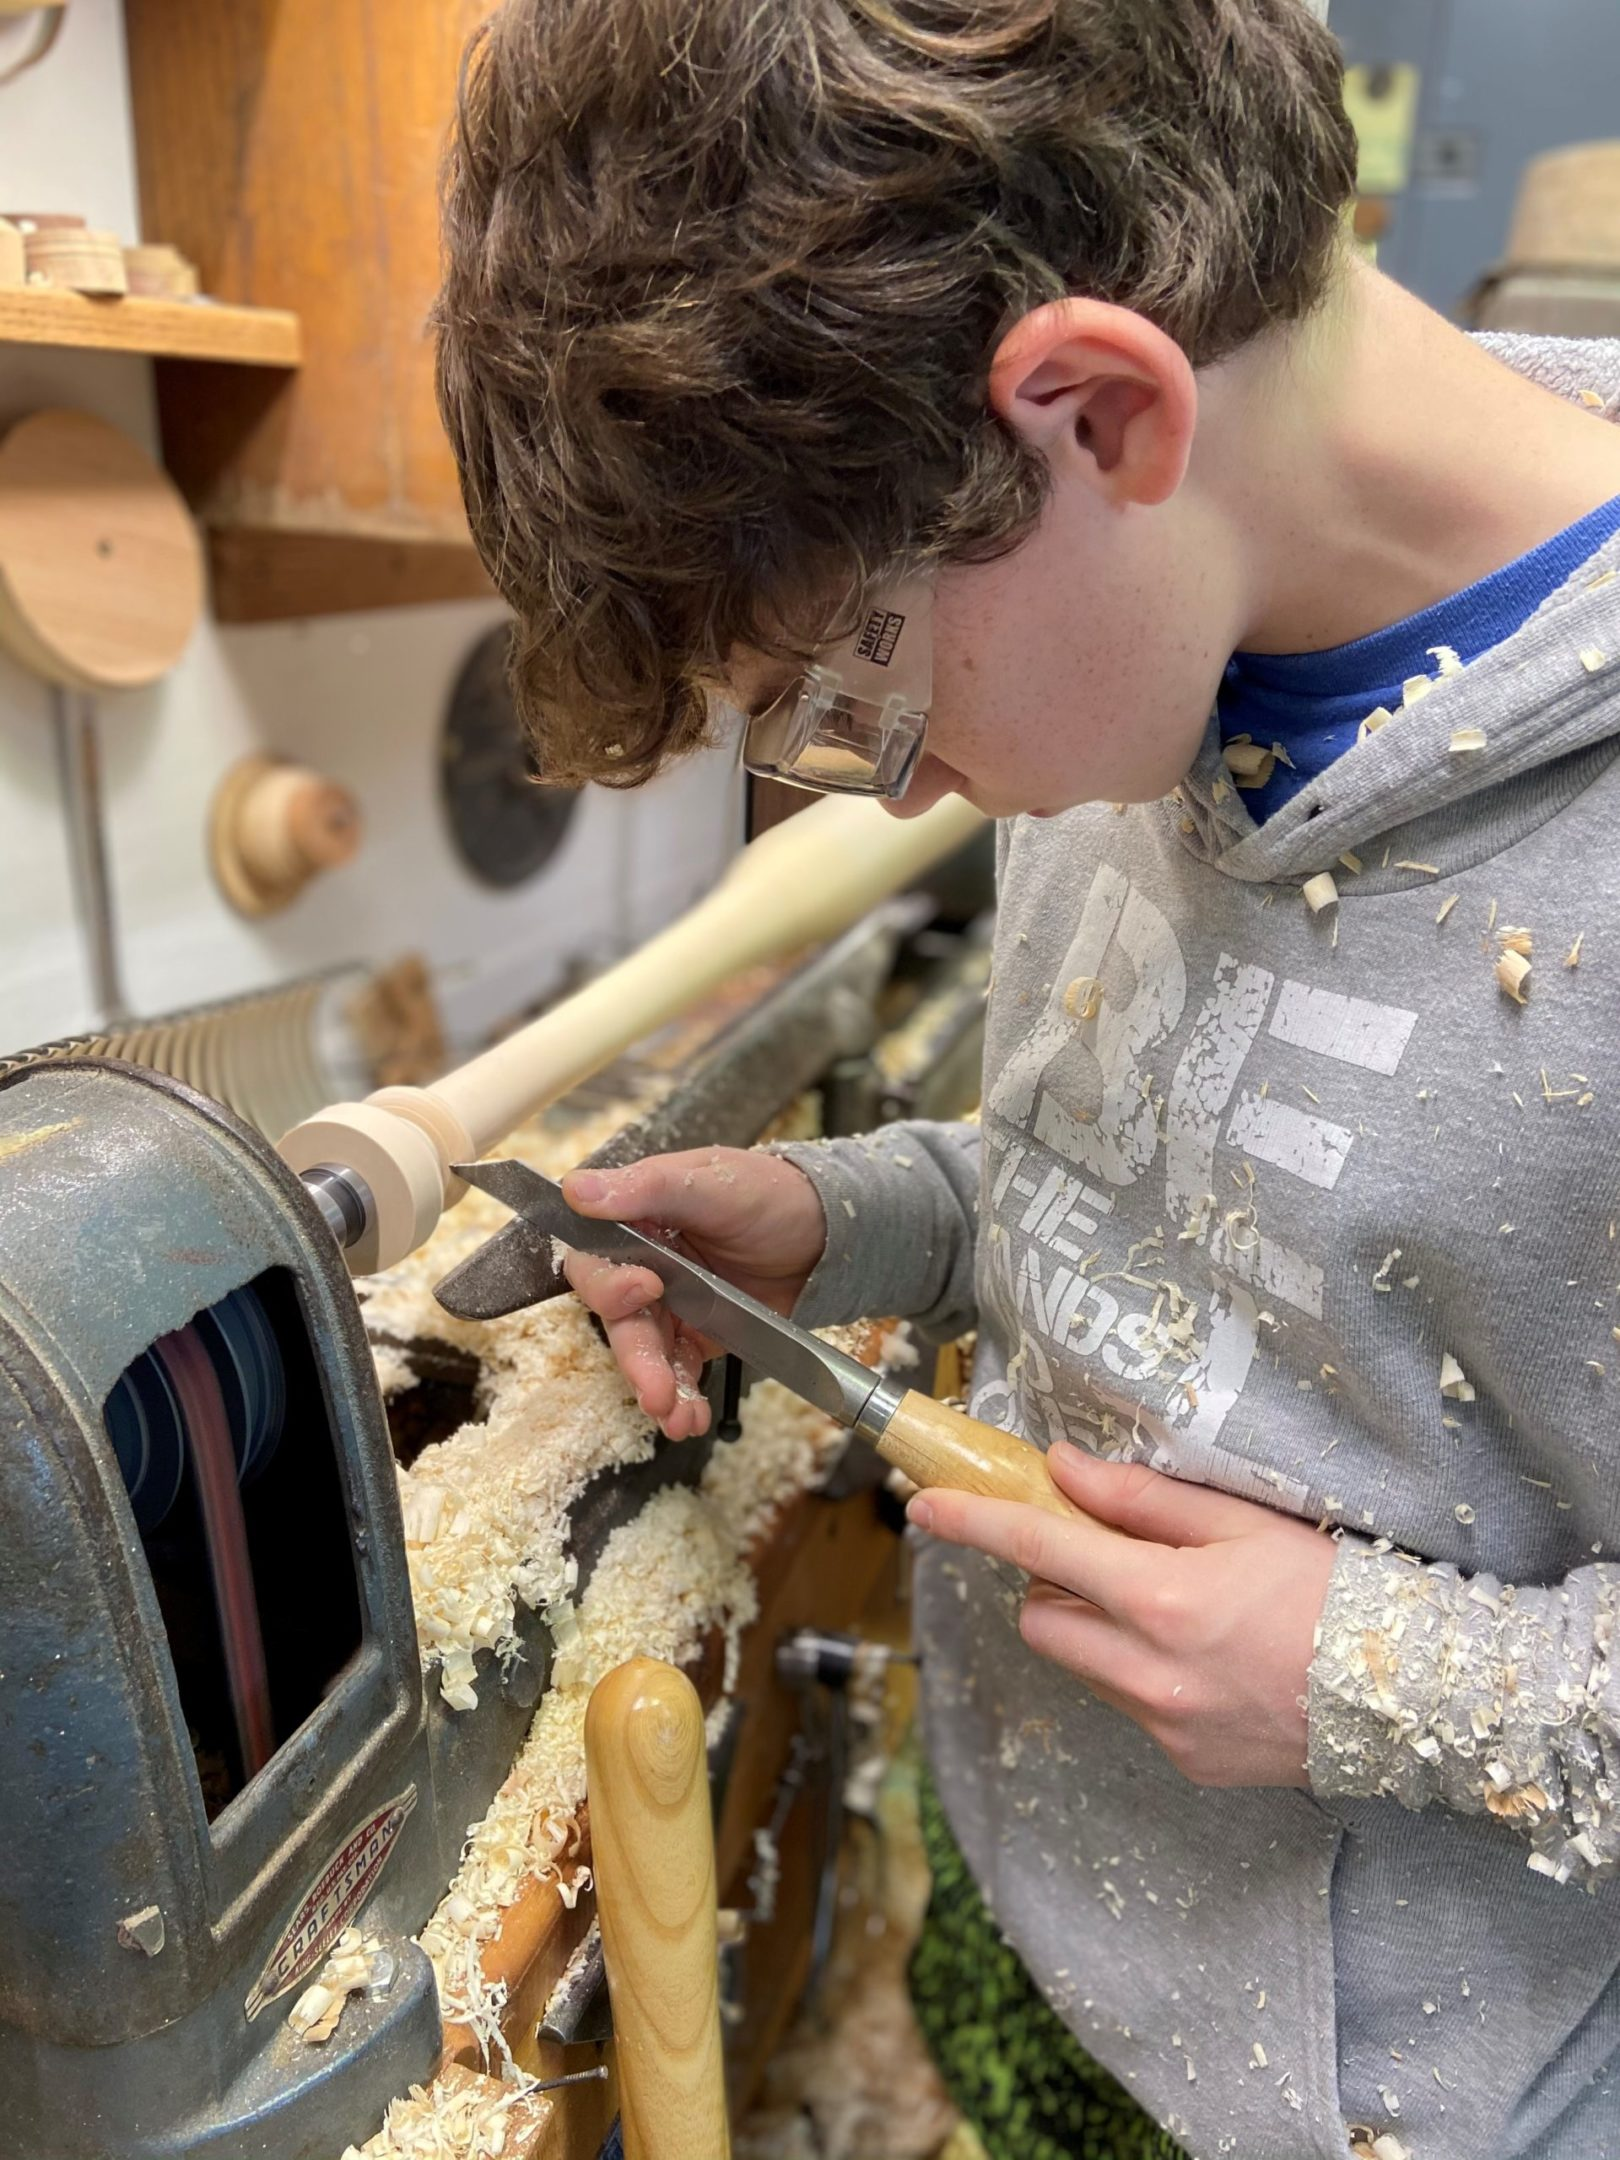 Photo of Tommy Rhomberg using his woodworking lathe